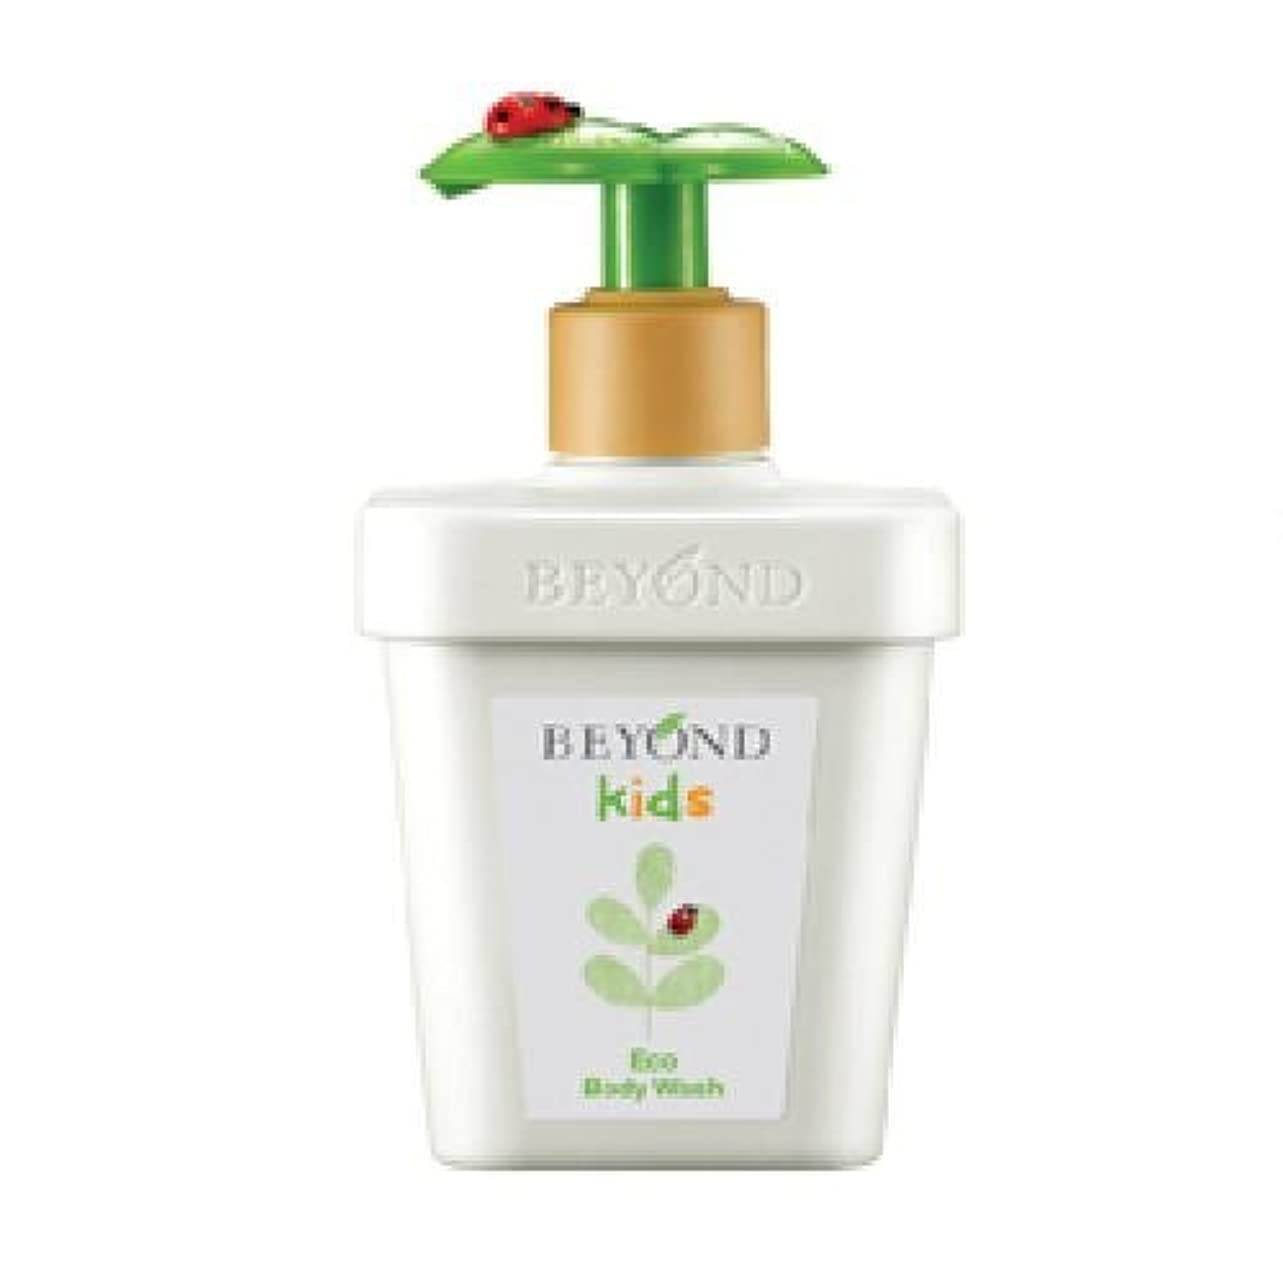 BEYOND Kids Eco Body Wash [Korean Import]